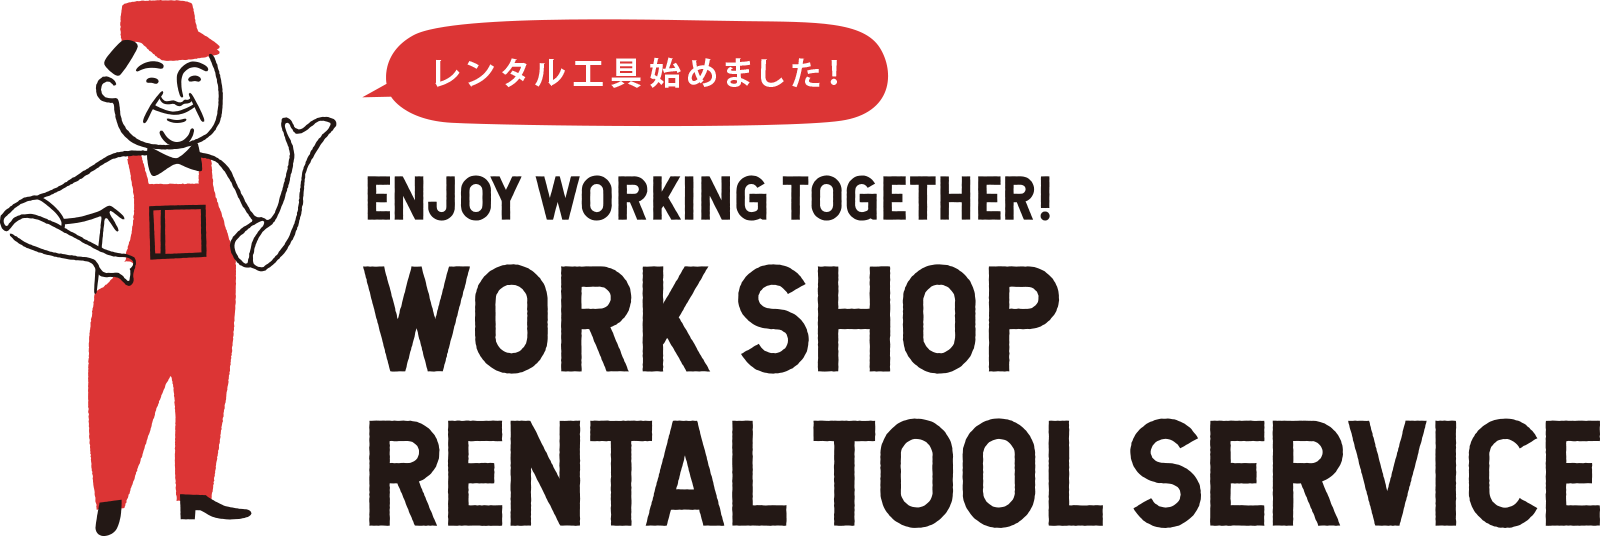 WORK SHOP RENTAL TOOL SERVICE ENJOY WORKING TOGETHER!